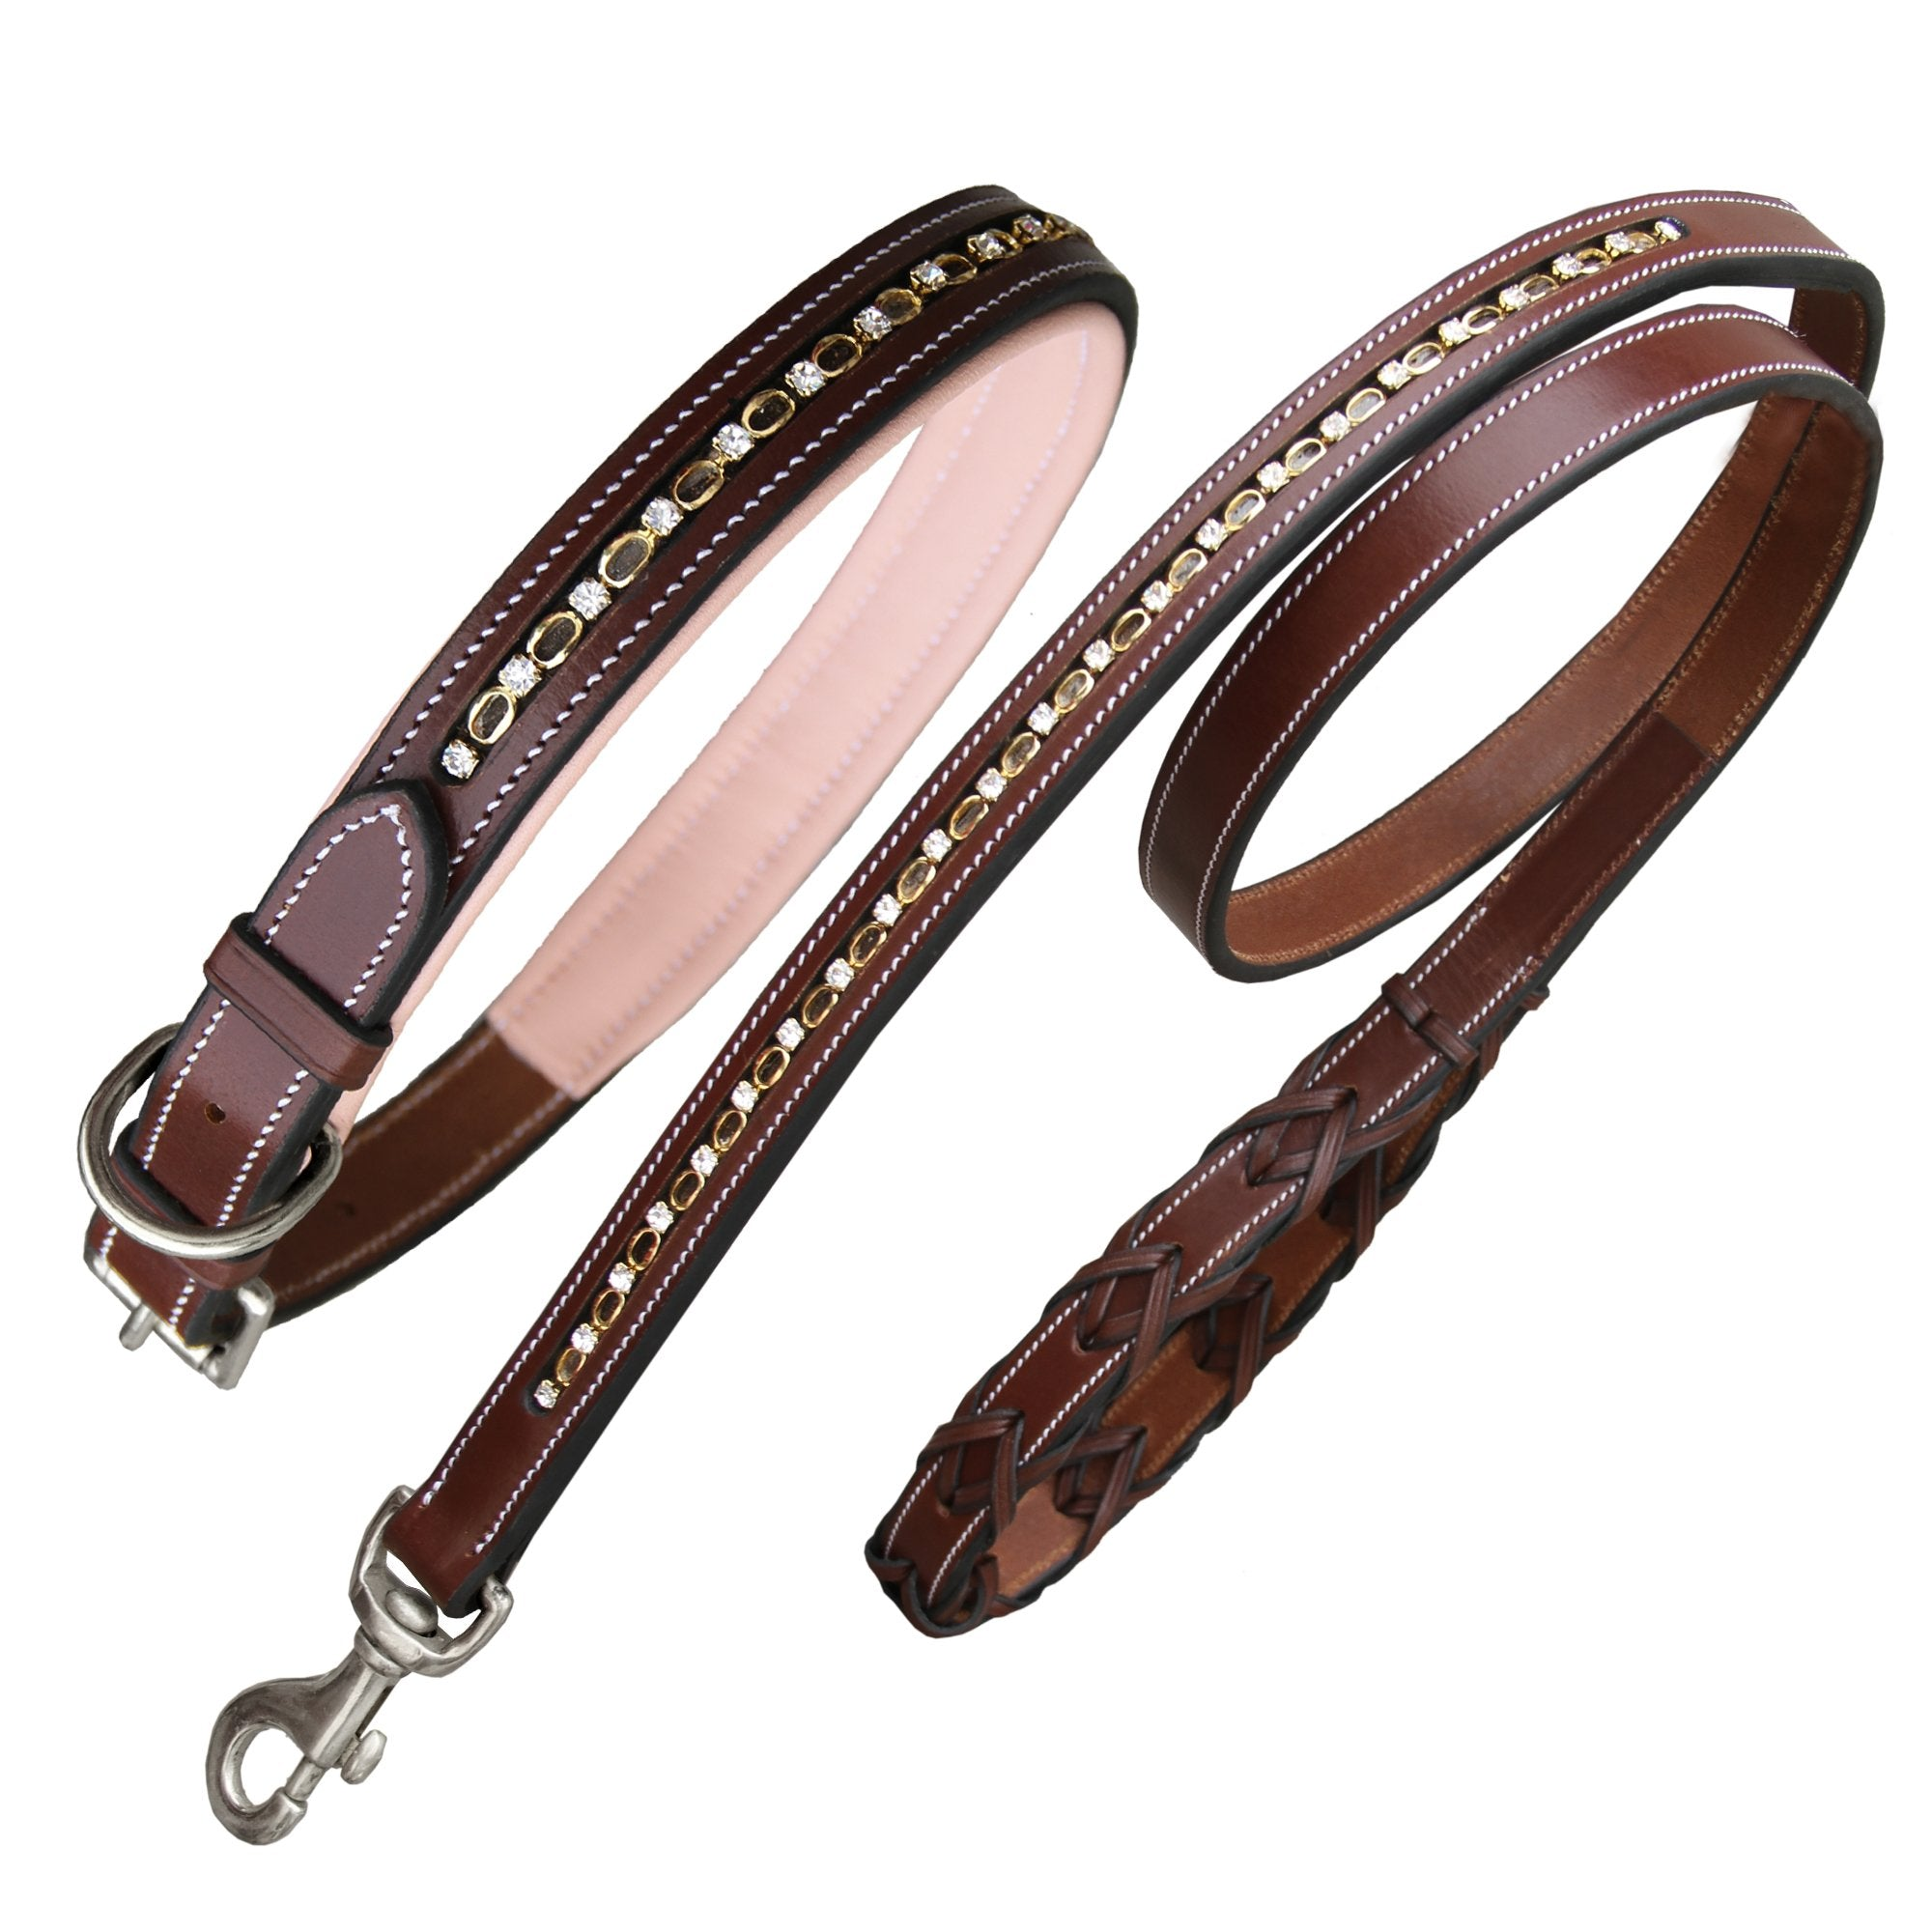 ExionPro Bling Beige Dog Collar With Lead-Bridles & Reins